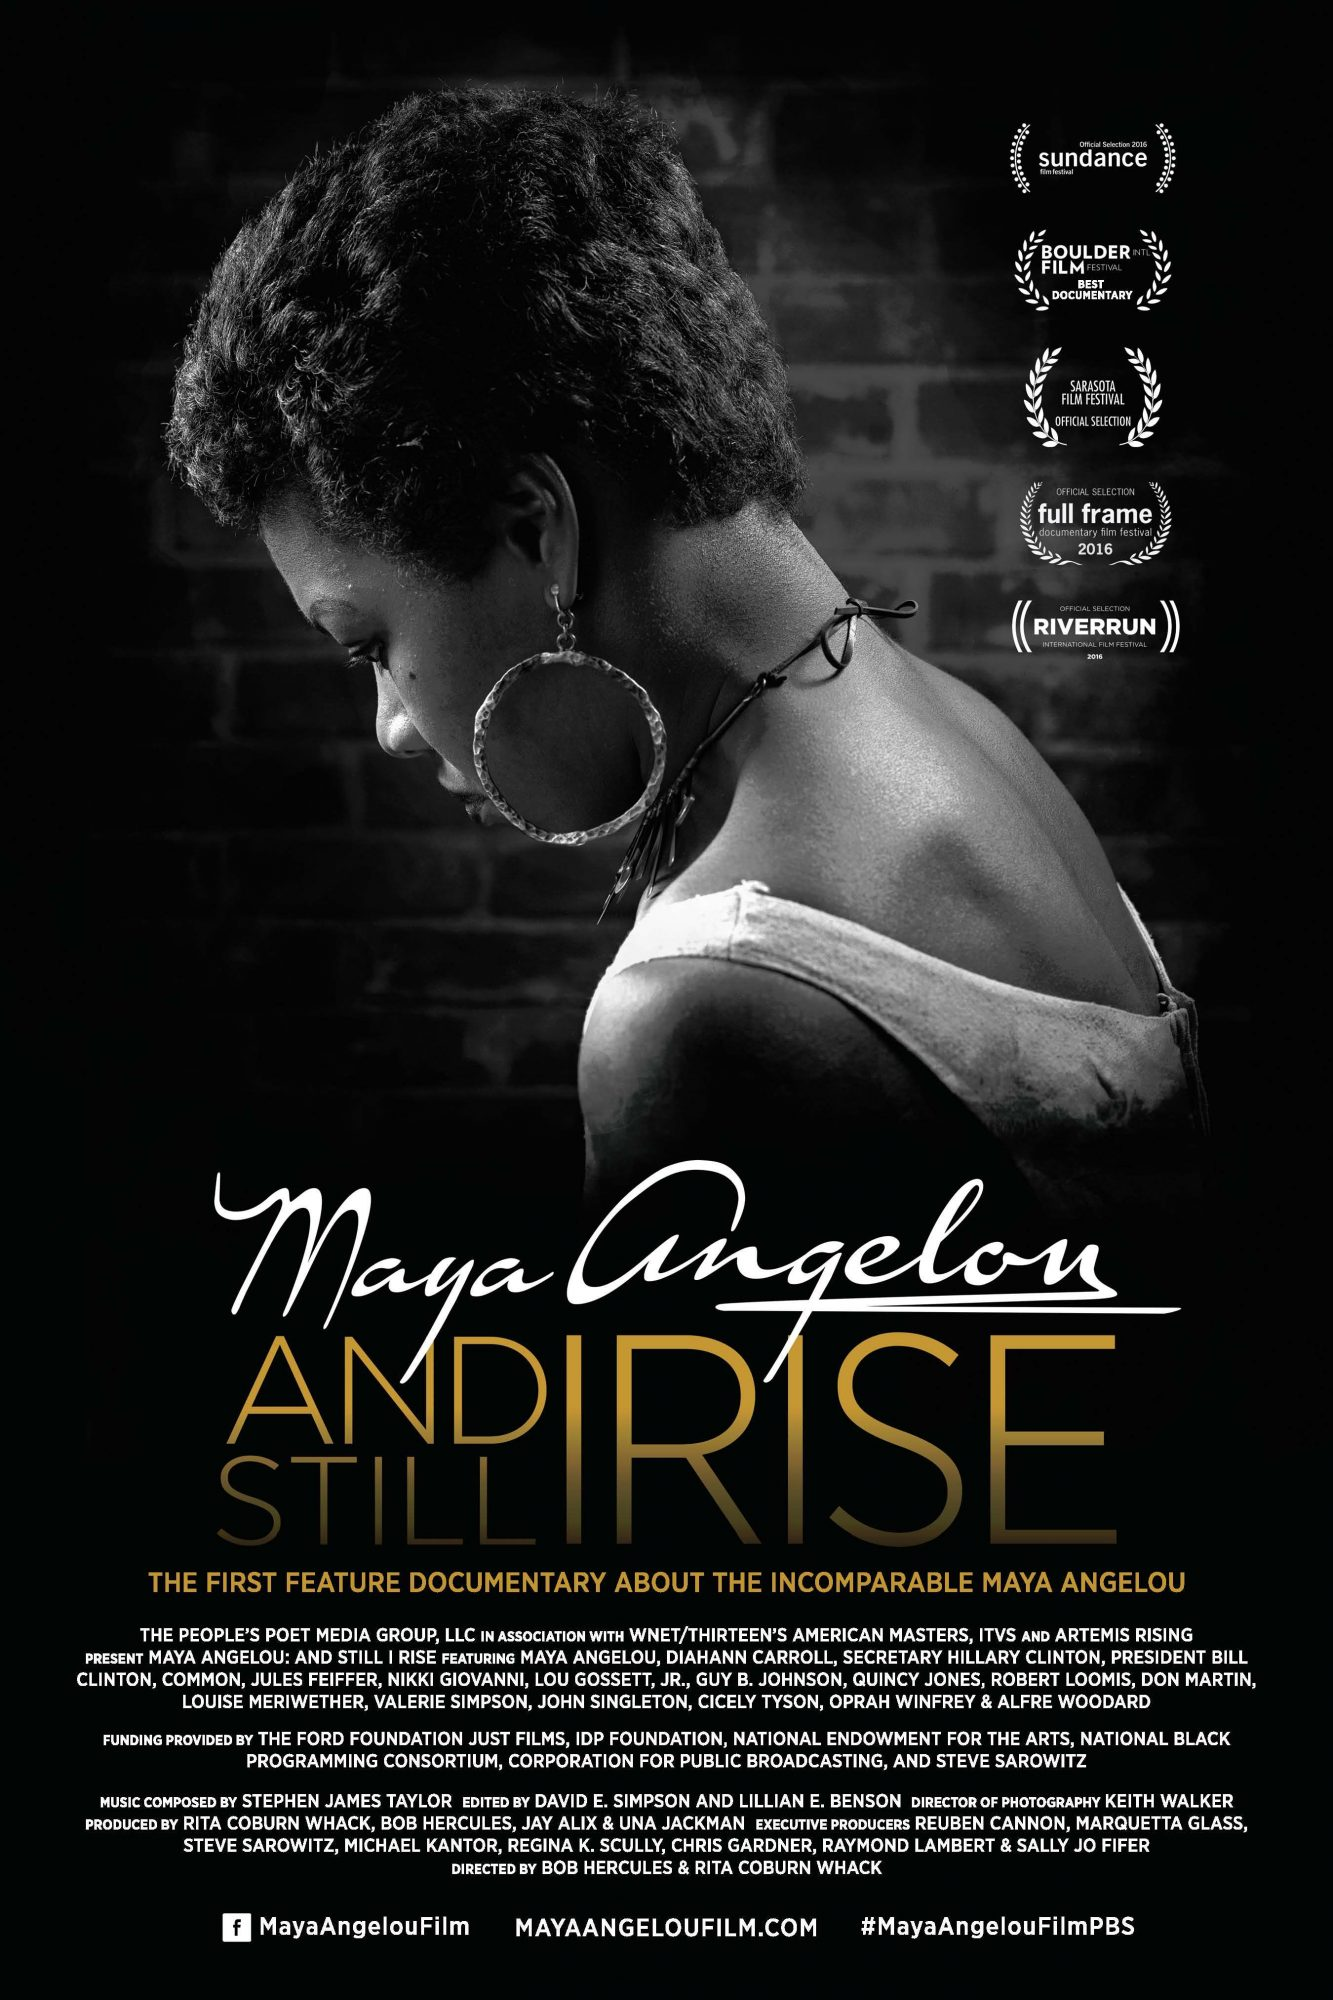 picture-of-maya-angelou-and-I-still-rise-movie-photo1.jpg